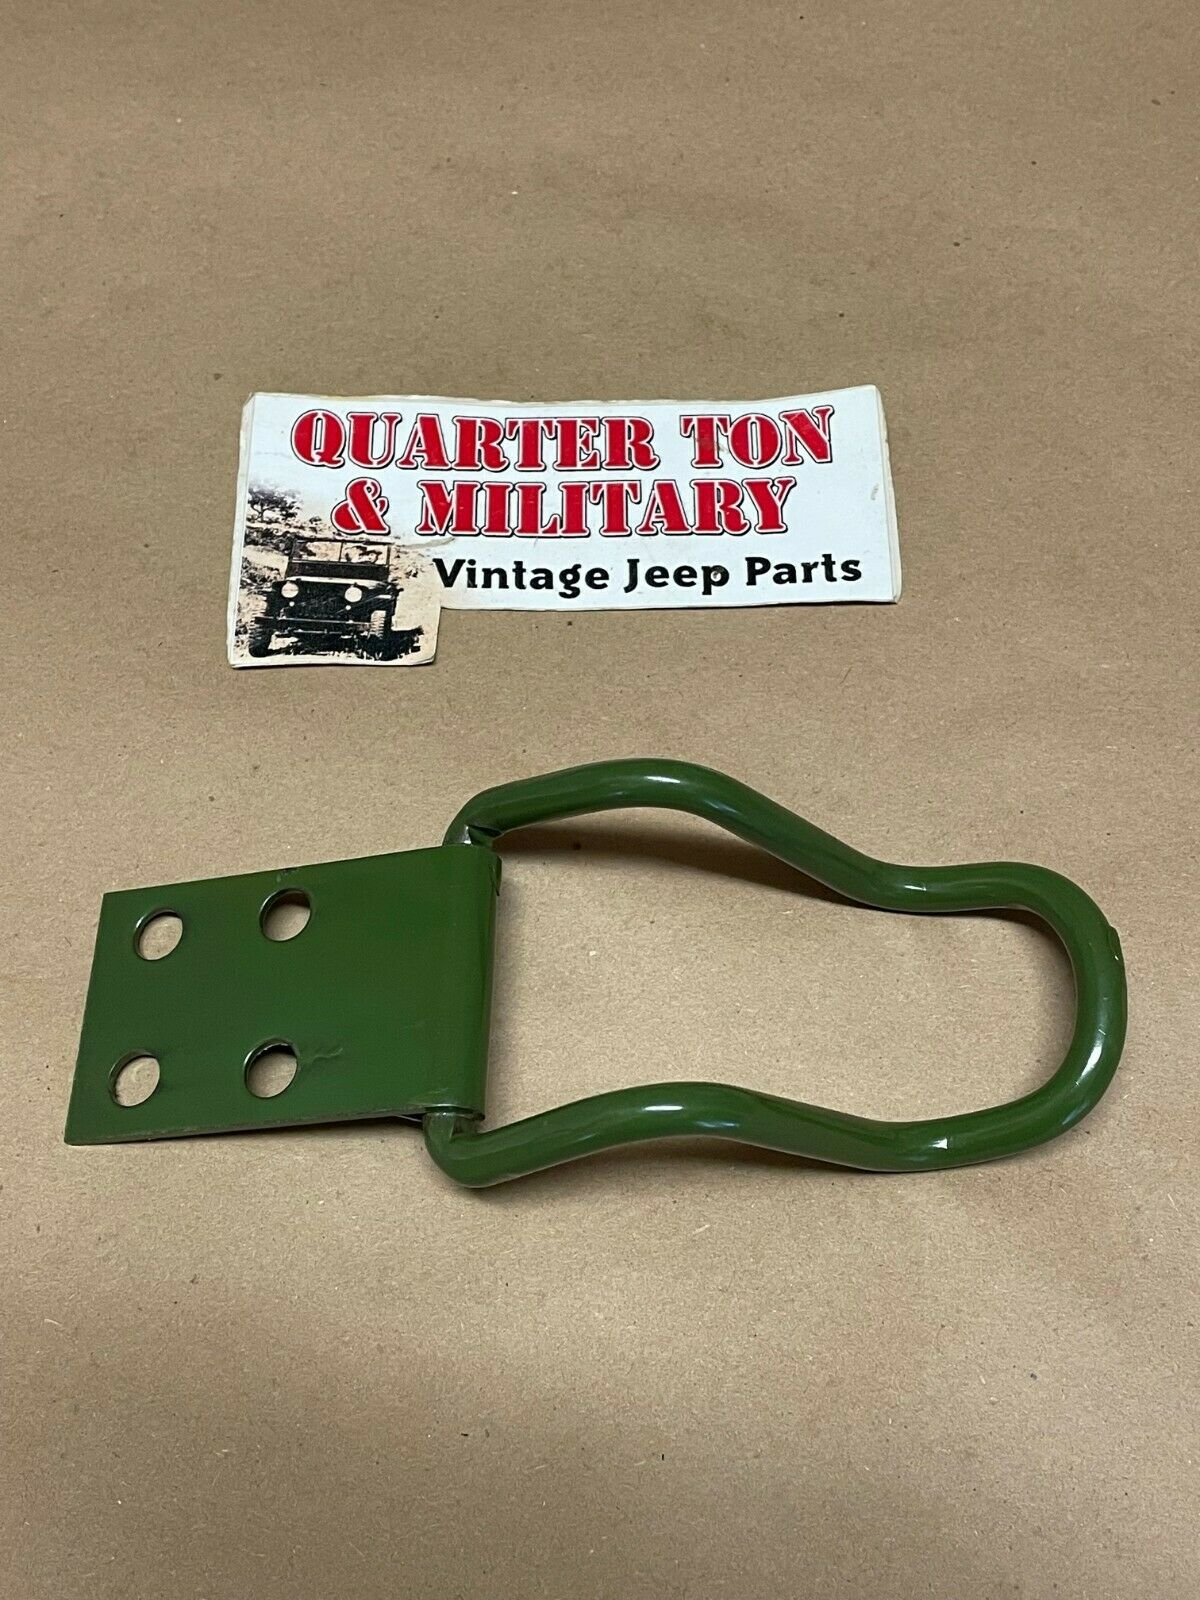 Jeep Willys Mb Gpw M38 Axe Head Hinge Bracket Clamp Rear Mount Hinged Clamps Wiring Harness 1 Of See More